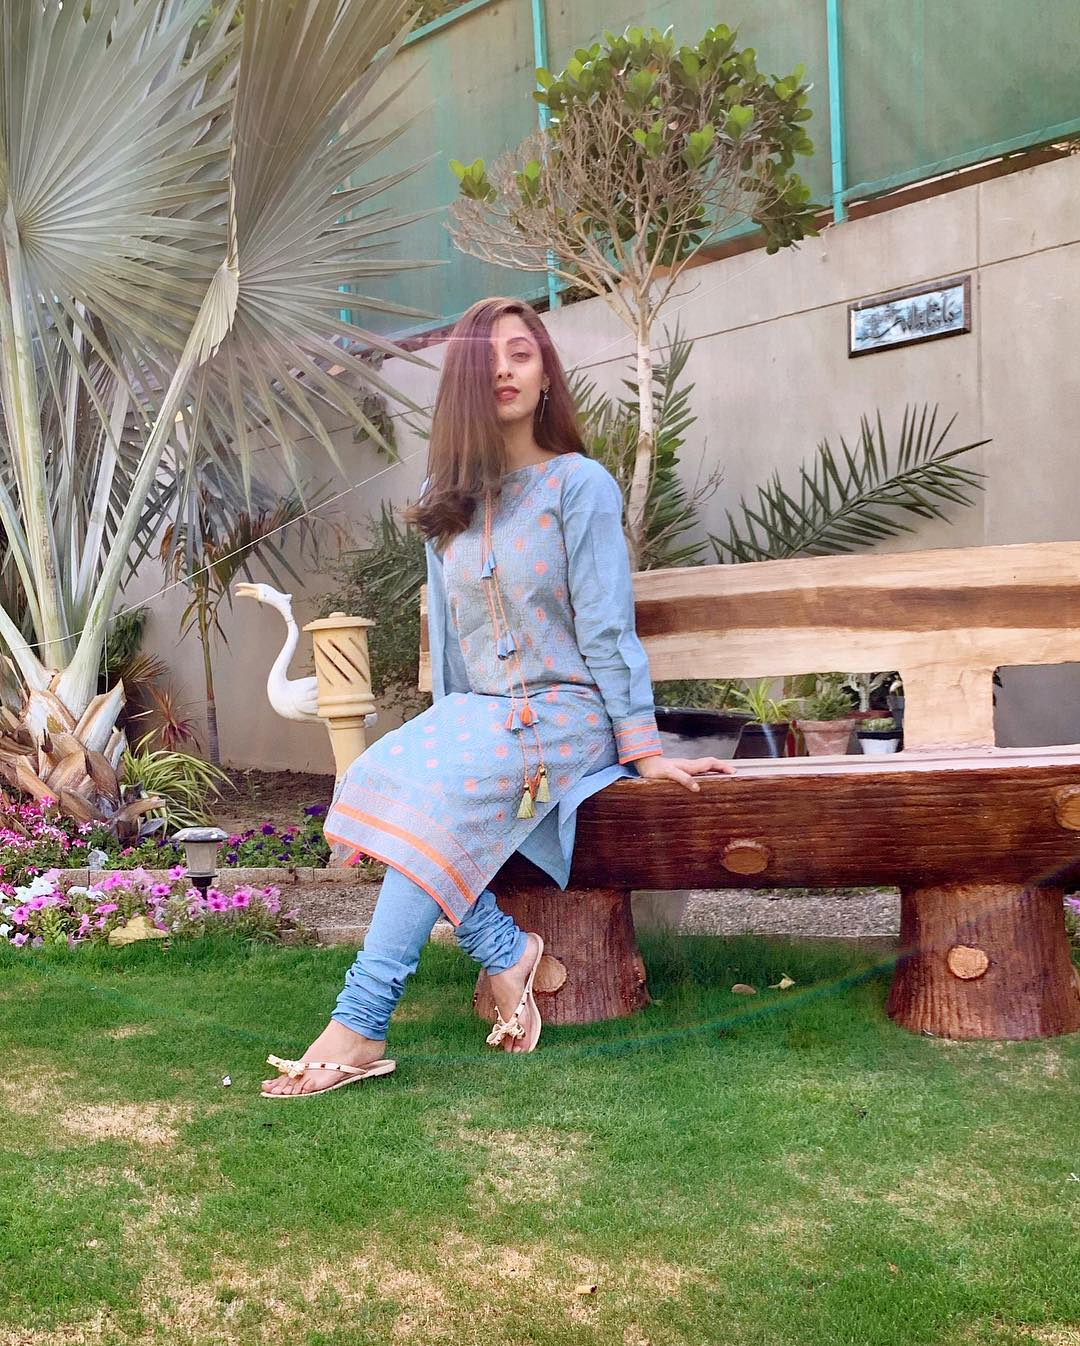 Awesome Sanam Chaudhry on the Set of her Drama Meer Abru